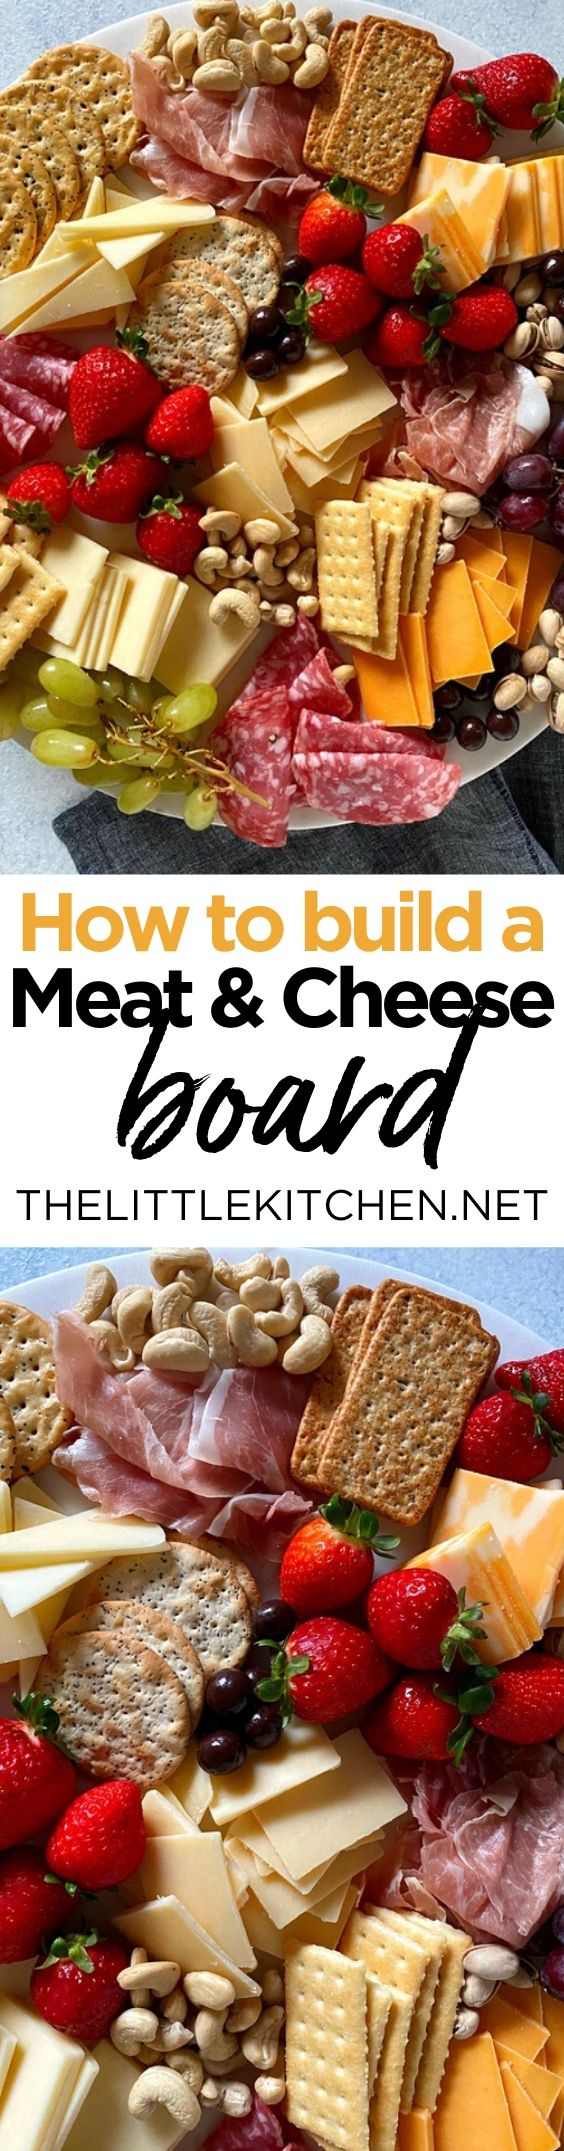 How to Build a Charcuterie Board from thelittlekitchen.net